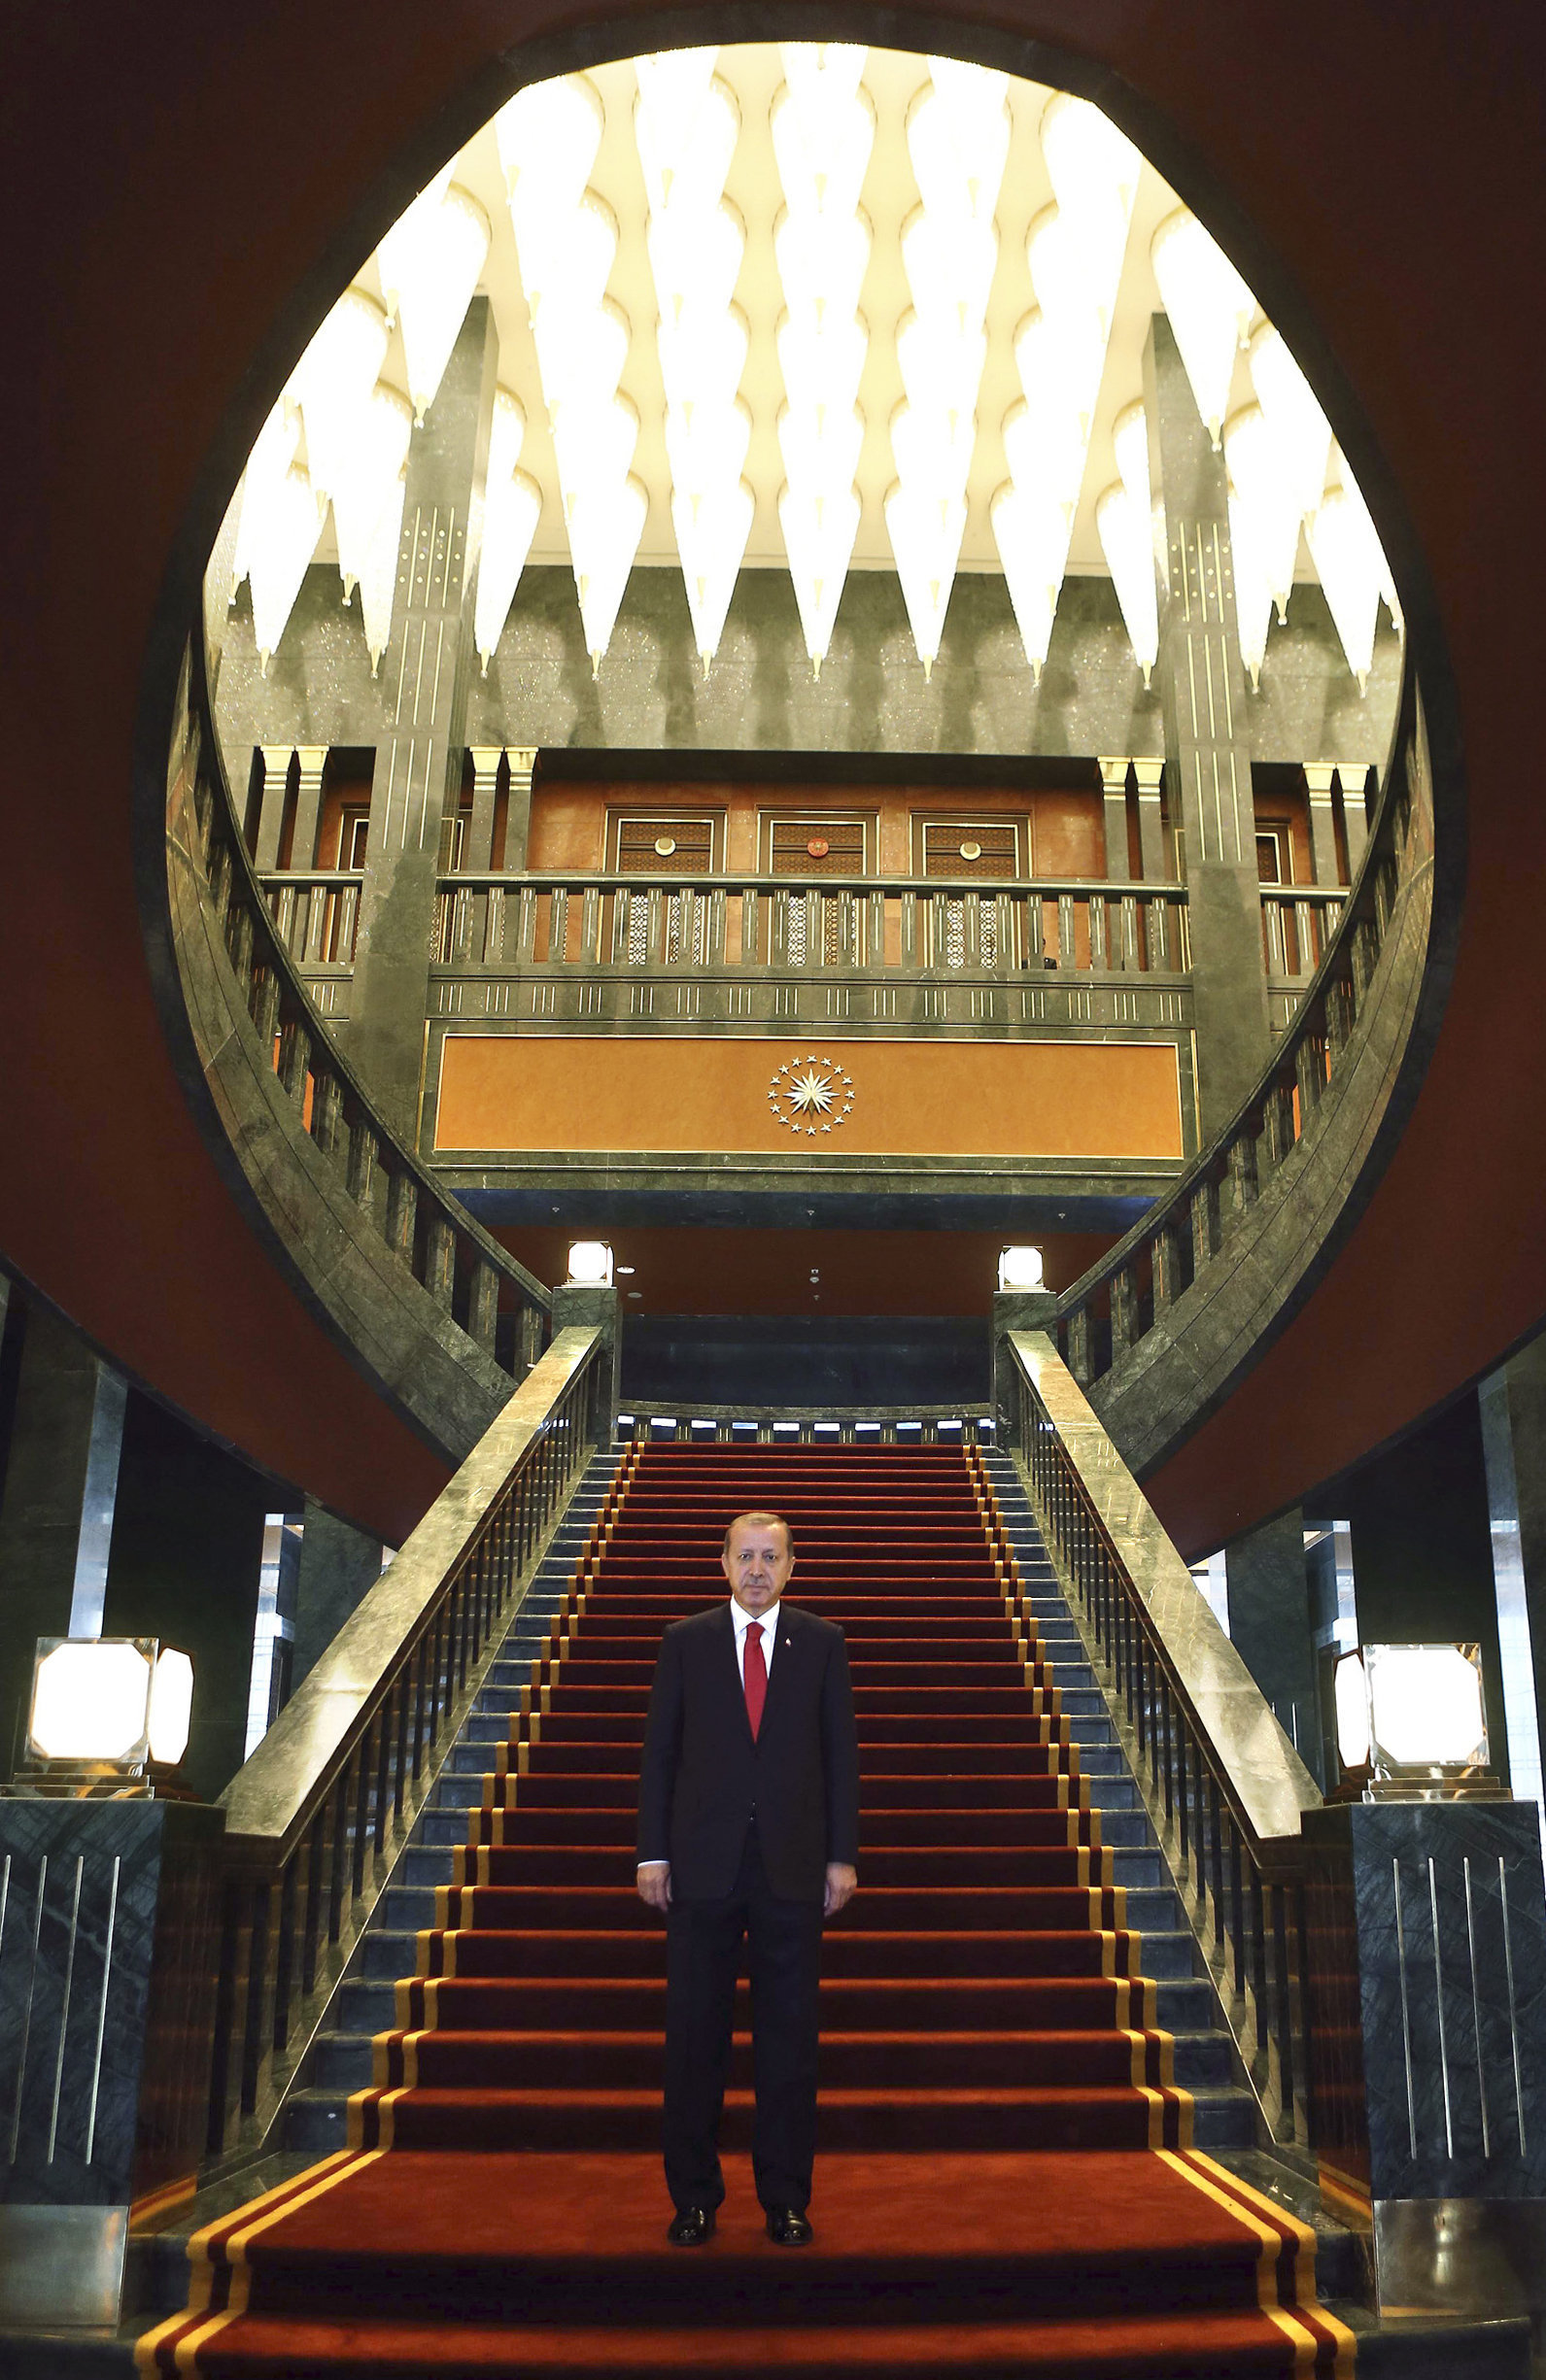 Turkish President Recep Tayyip Erdogan poses inside the new Ak Saray presidential palace (White Palace) on the outskirts of Ankara (File)